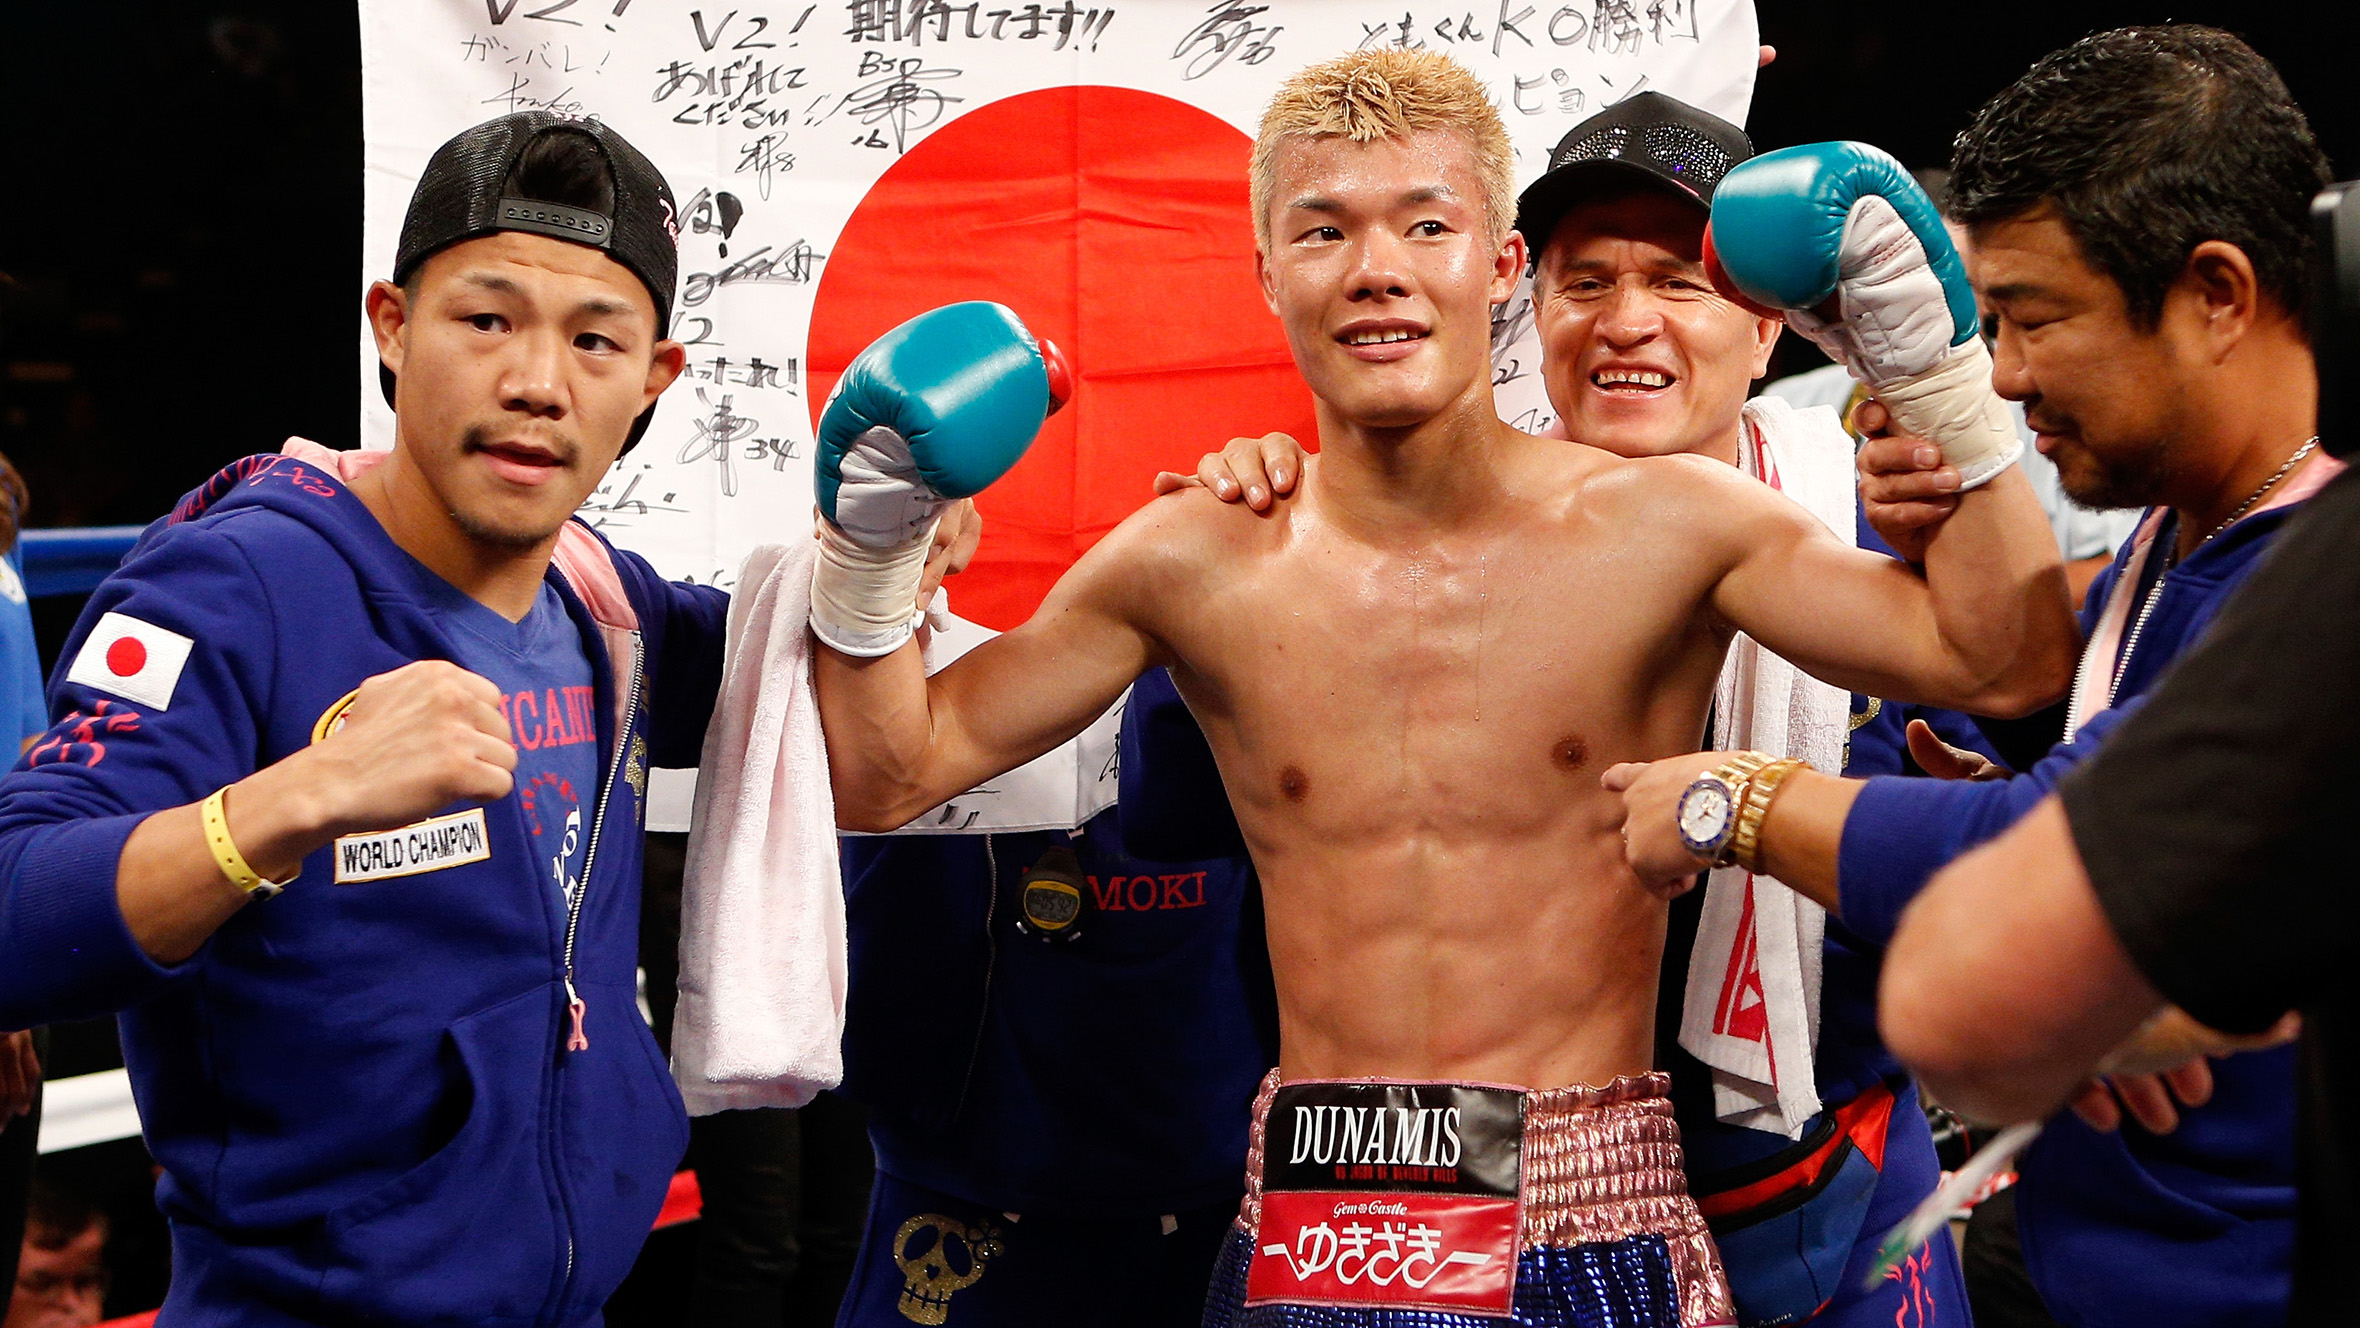 LAS VEGAS, NV - JULY 12:  Tomoki Kameda (C) of Japan poses in the ring after his seventh round knockout victory over Pungluang Singyu during their WBO bantamweight title bout at the MGM Grand Garden Arena on July 12, 2014 in Las Vegas, Nevada.  (Photo by Josh Hedges/Getty Images)